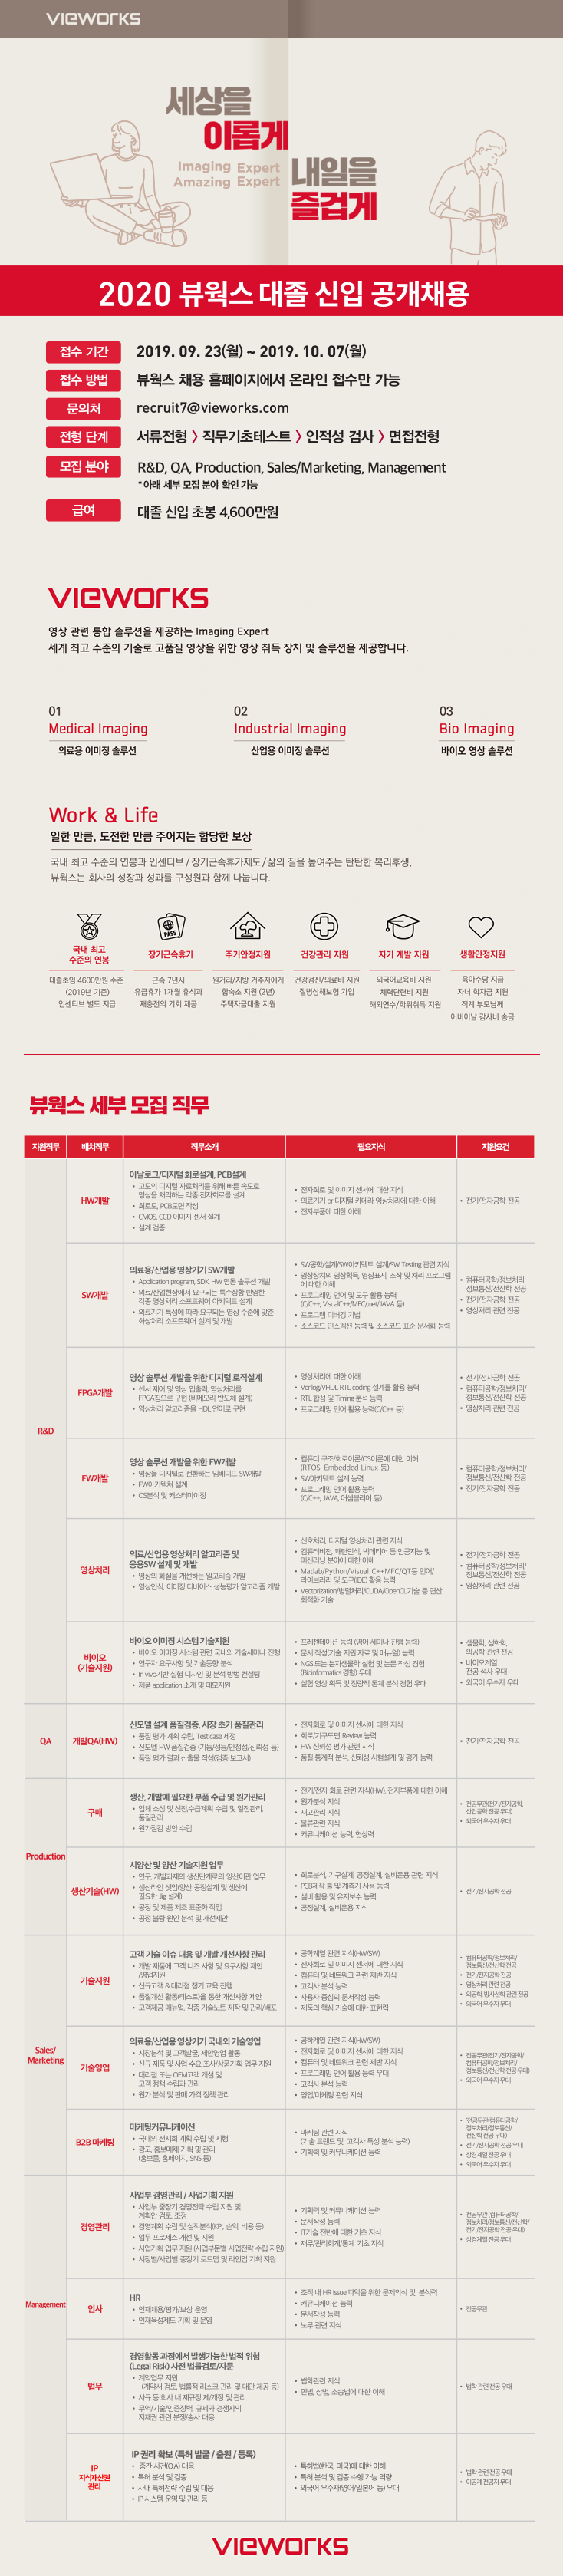 Vieworks_19 공채 웹홍보문.png